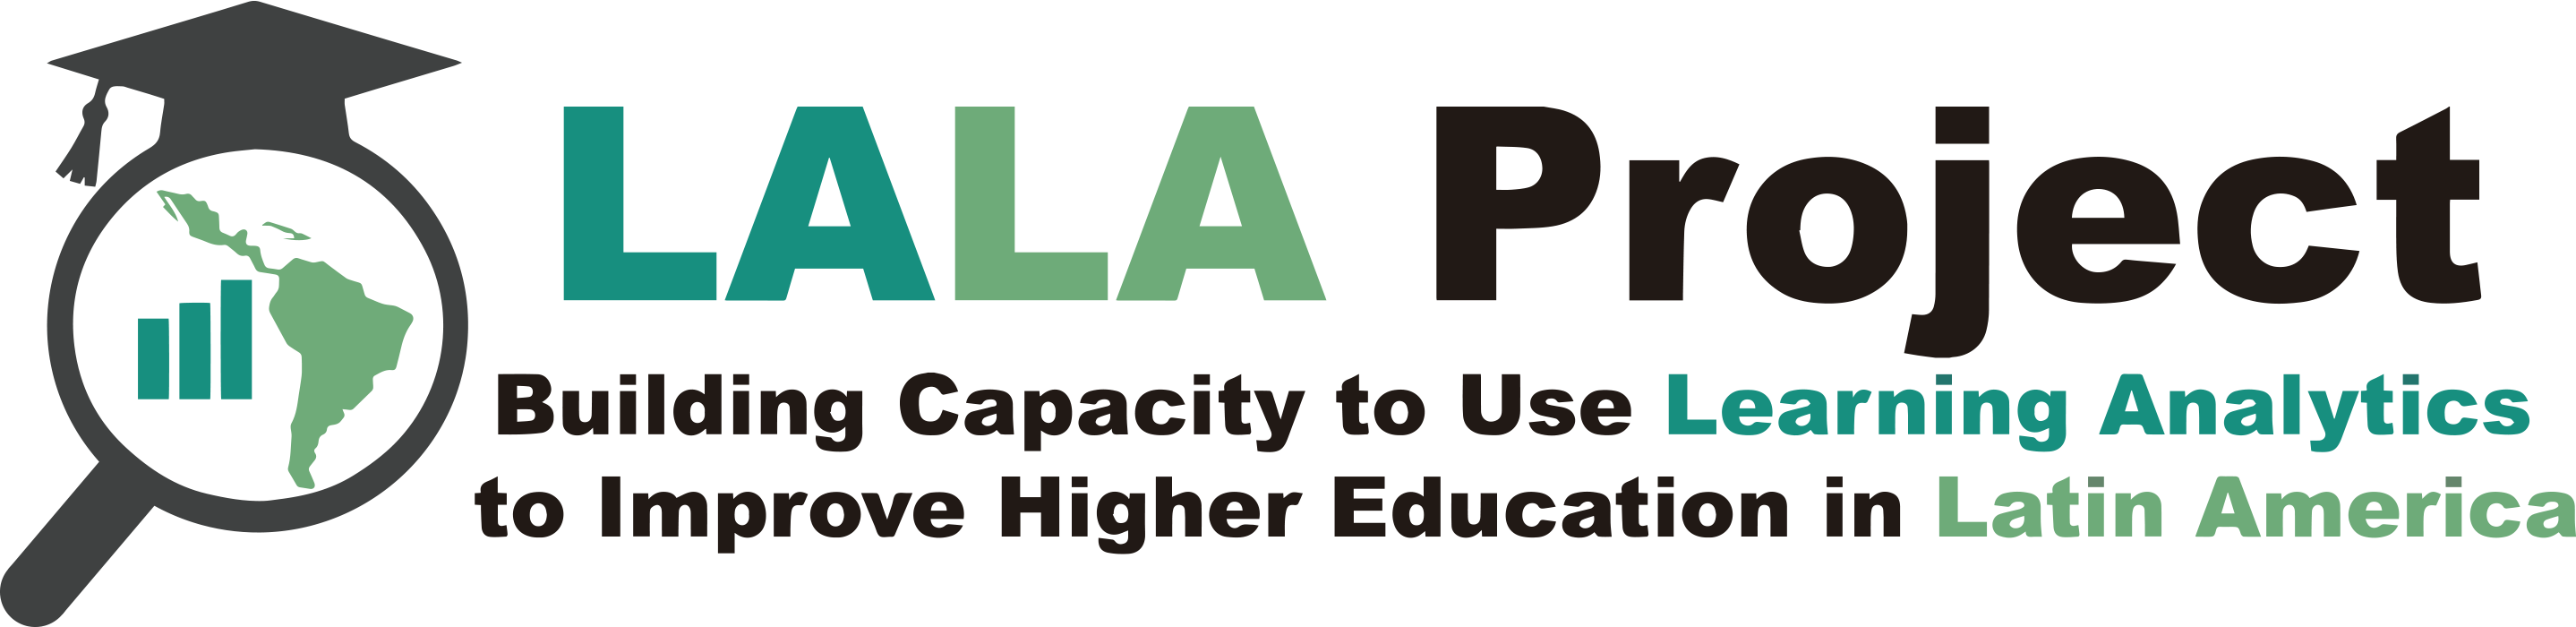 LALA – Building Capacity to Use learning Analytics to Improve Higher Education in Latin America